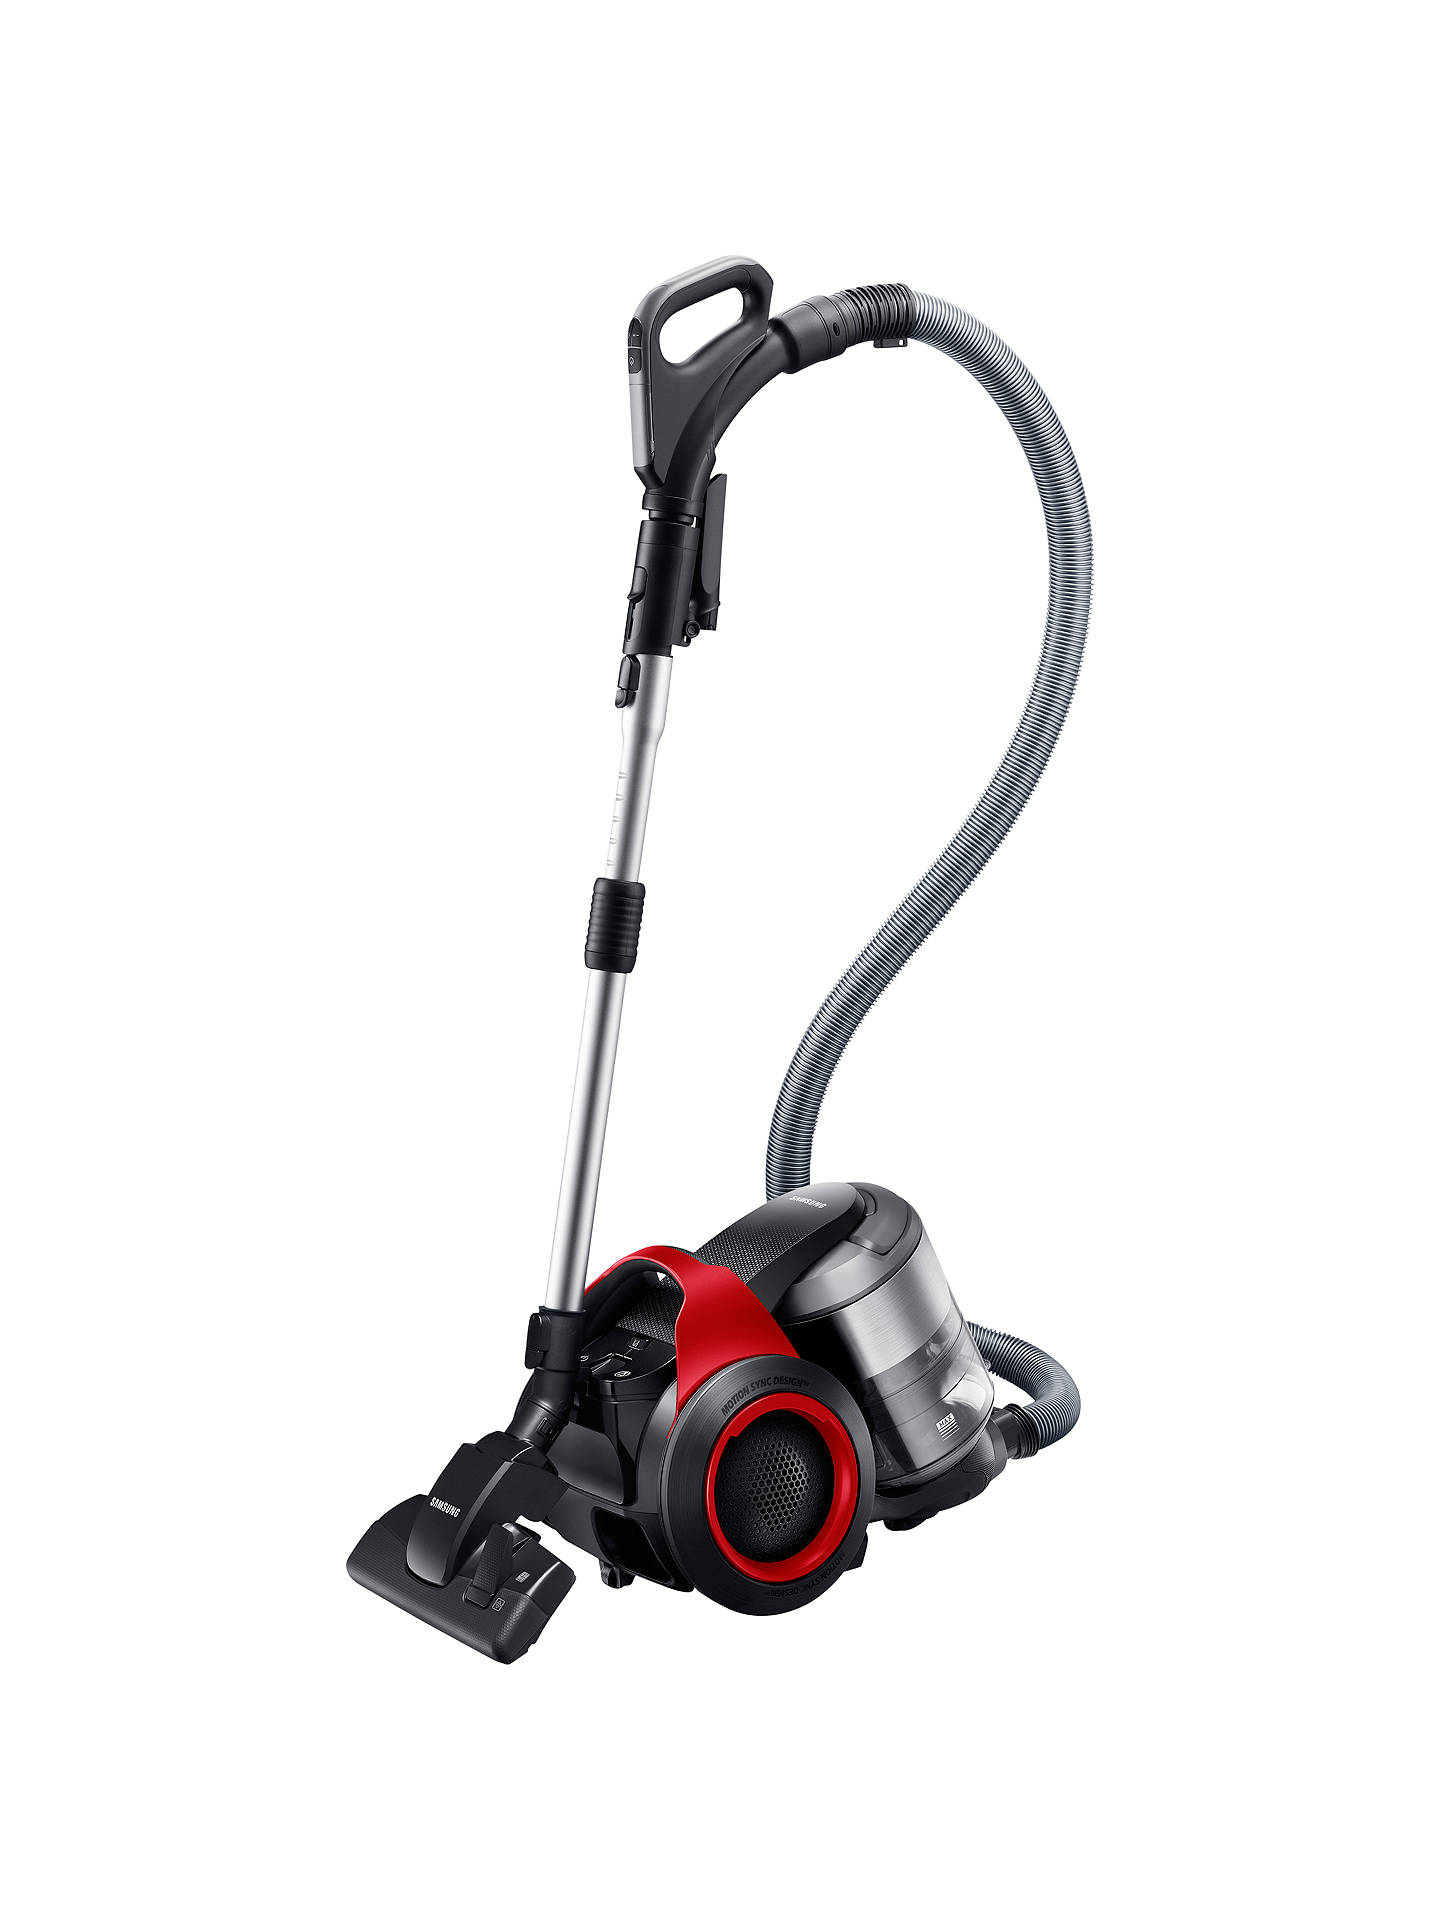 Samsung VC20F70HDER Cylinder Vacuum Cleaner, Vitality Red